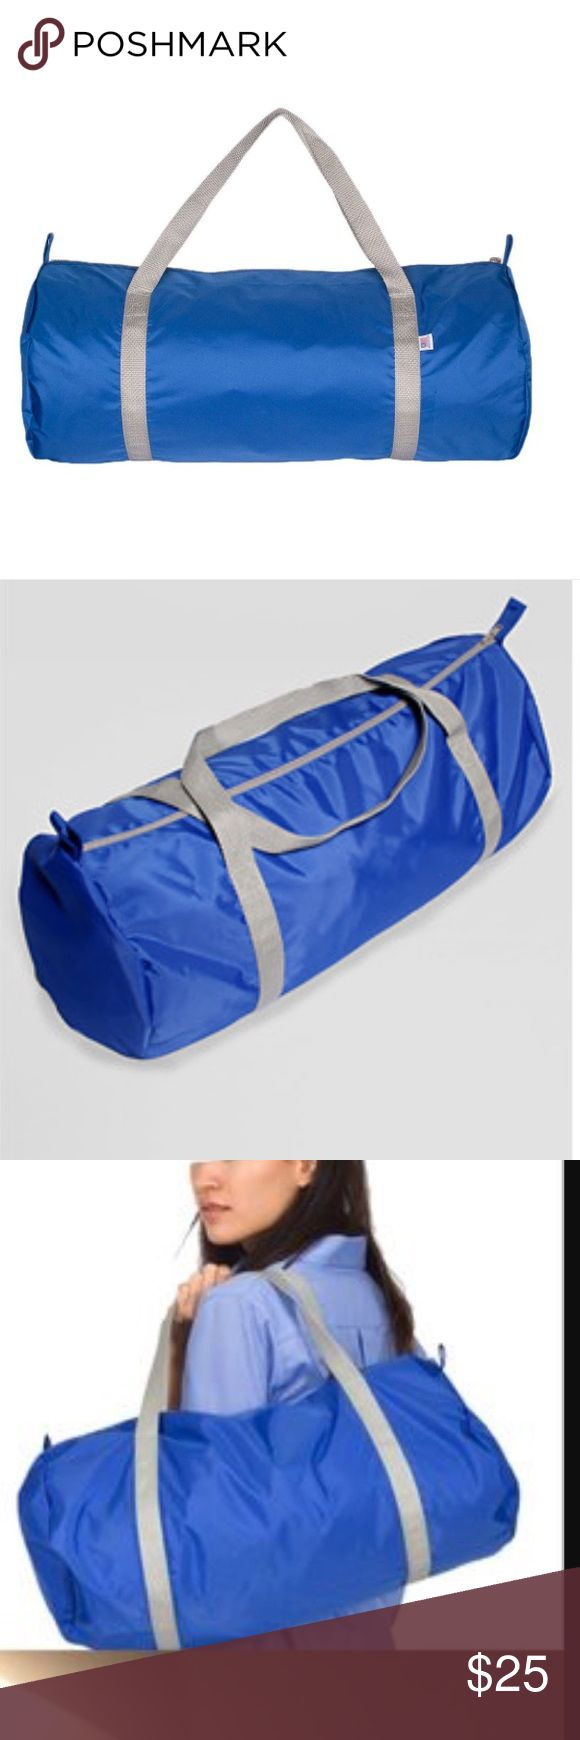 NWOT American Apparel Blue Nylon Sports/Gym Bag New Without Tag! A versatile bag, featuring nylon webbing straps and a nylon zipper closure. Water resistant build. Contrasting dual handles. Fabric: 100% Nylon. Blue with gray straps. American Apparel Bags